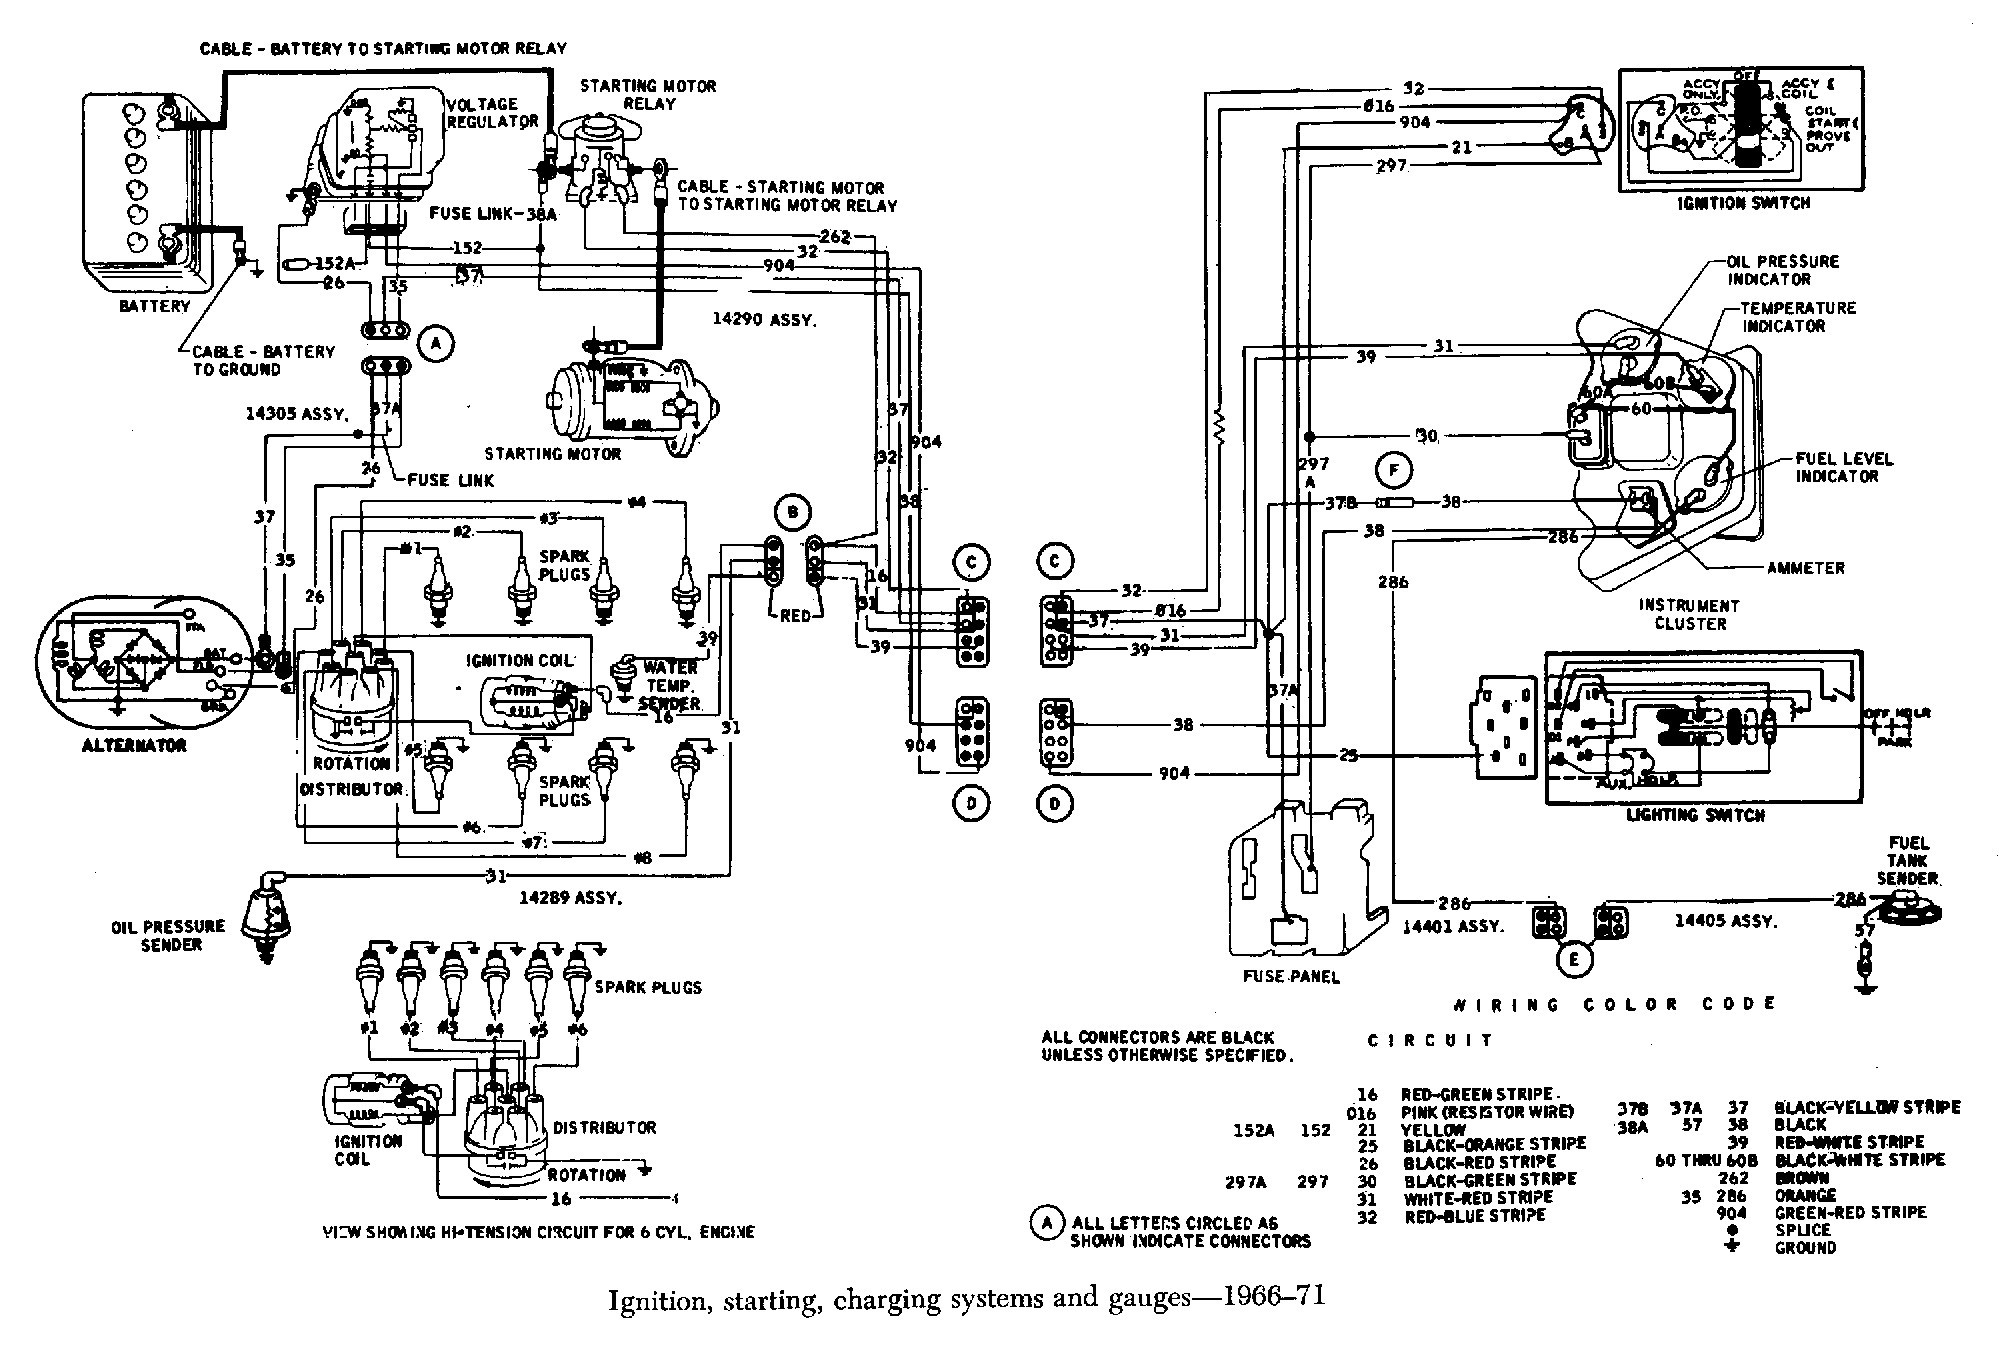 chevy sonic wiring diagram ignition